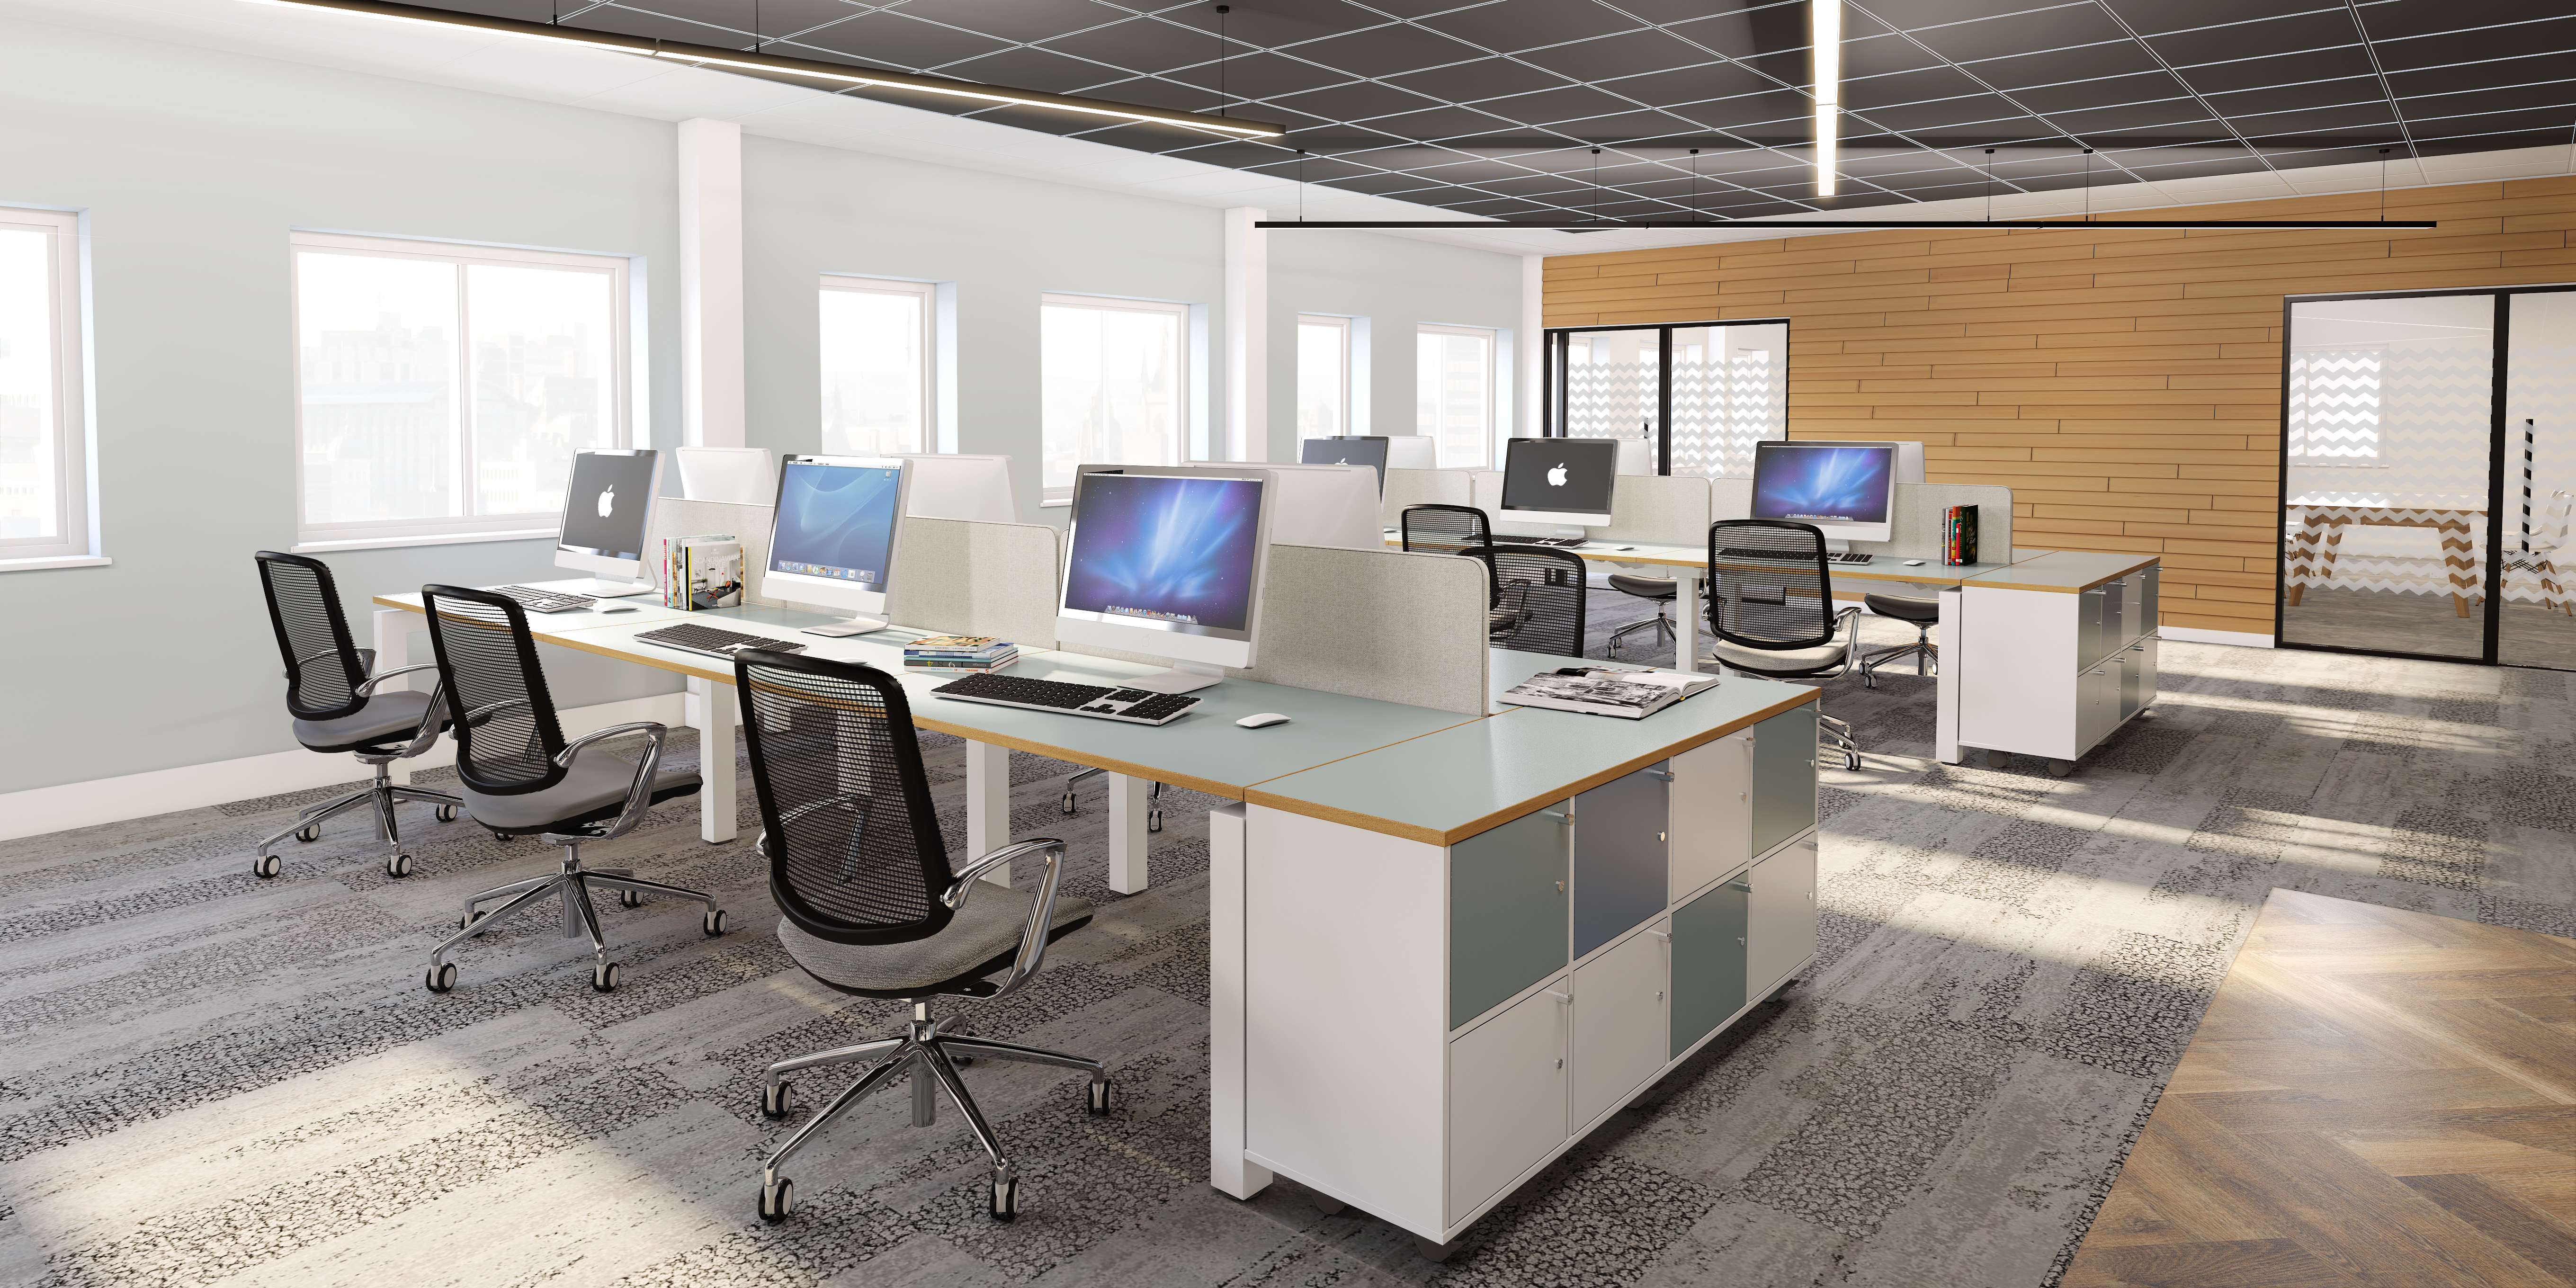 FIZZ UP YOUR OPEN PLAN OFFICE WITH EBORCRAFT'S NEW RANGE OF FURNITURE!